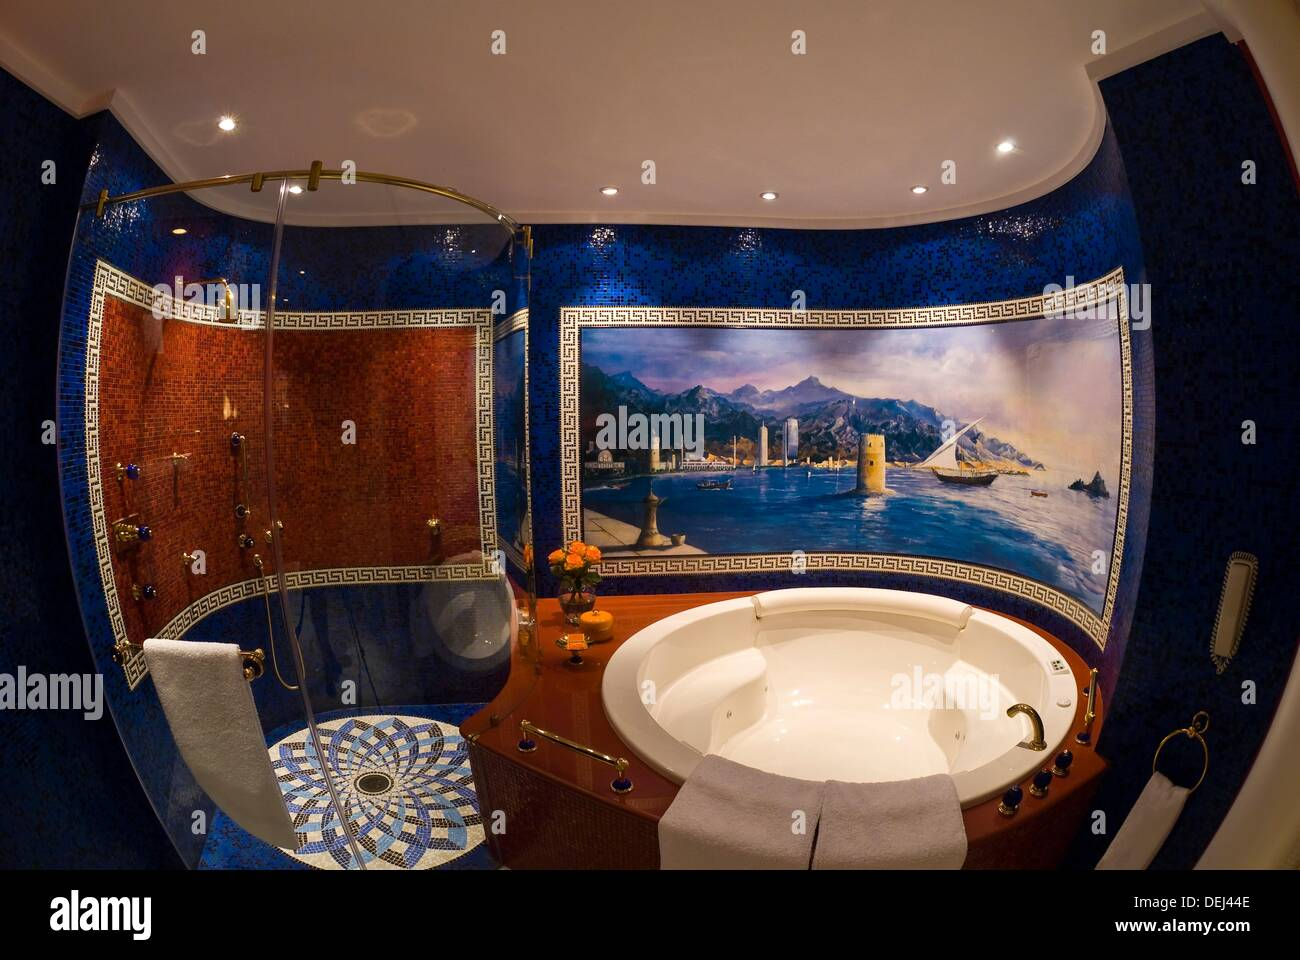 Shower and jacuzzi tub, Two bedroom suite Number 1109, Burj al Arab ...